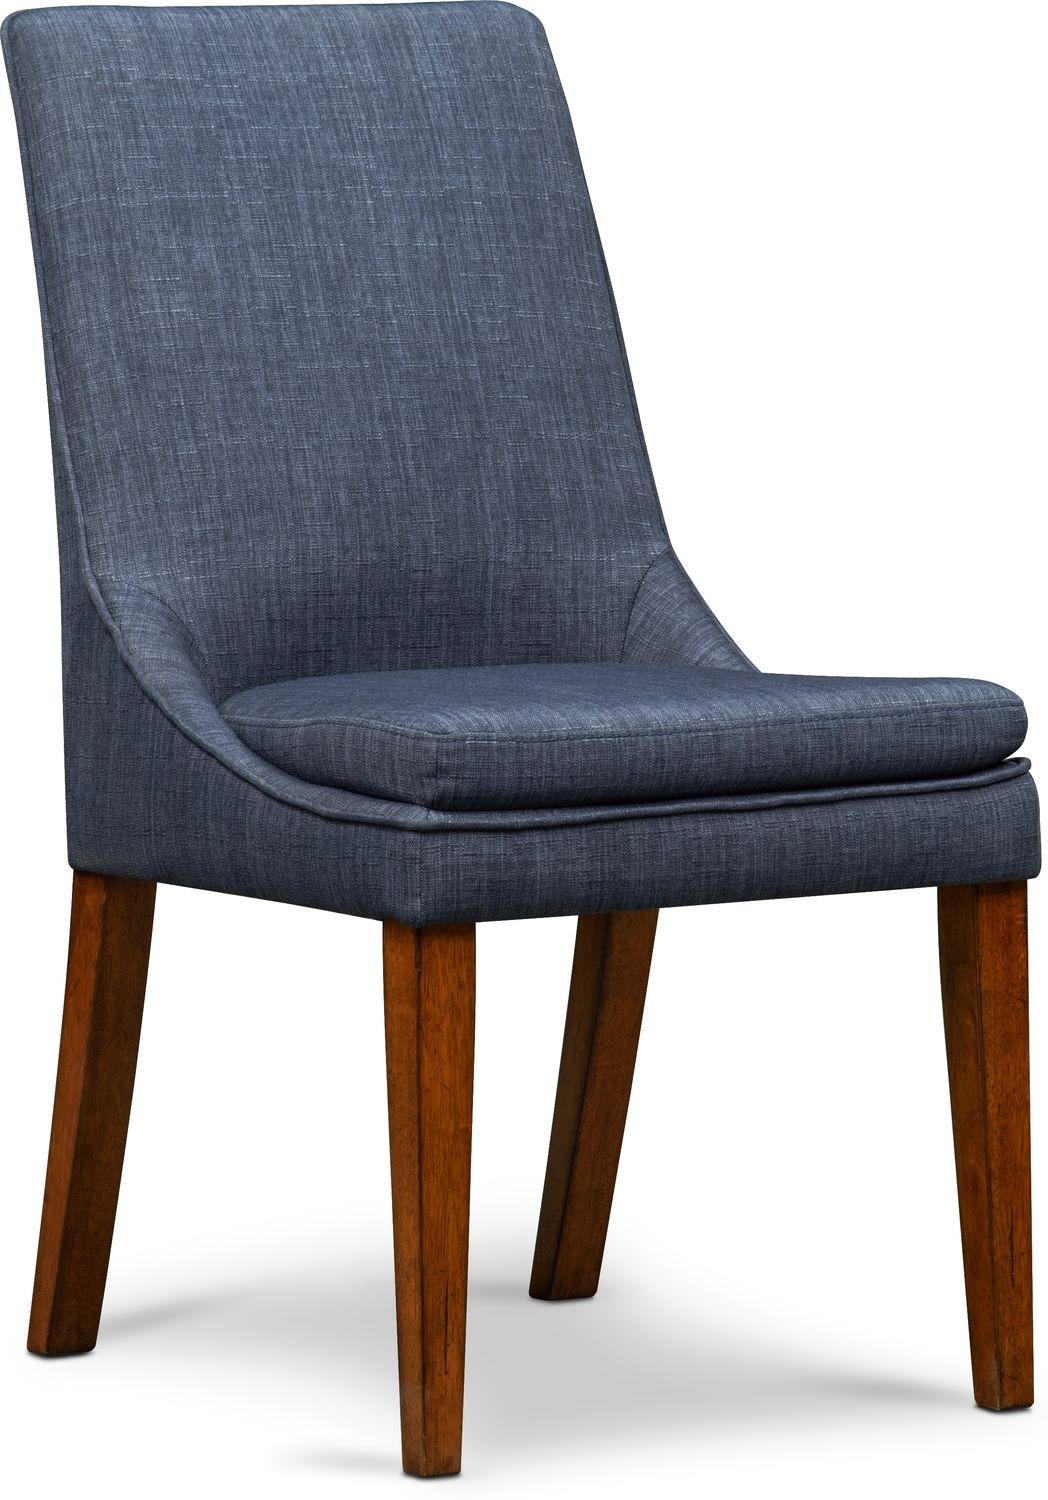 Adler Dining Table, 2 Side Chairs, 2 Upholstered Side Chairs and ...